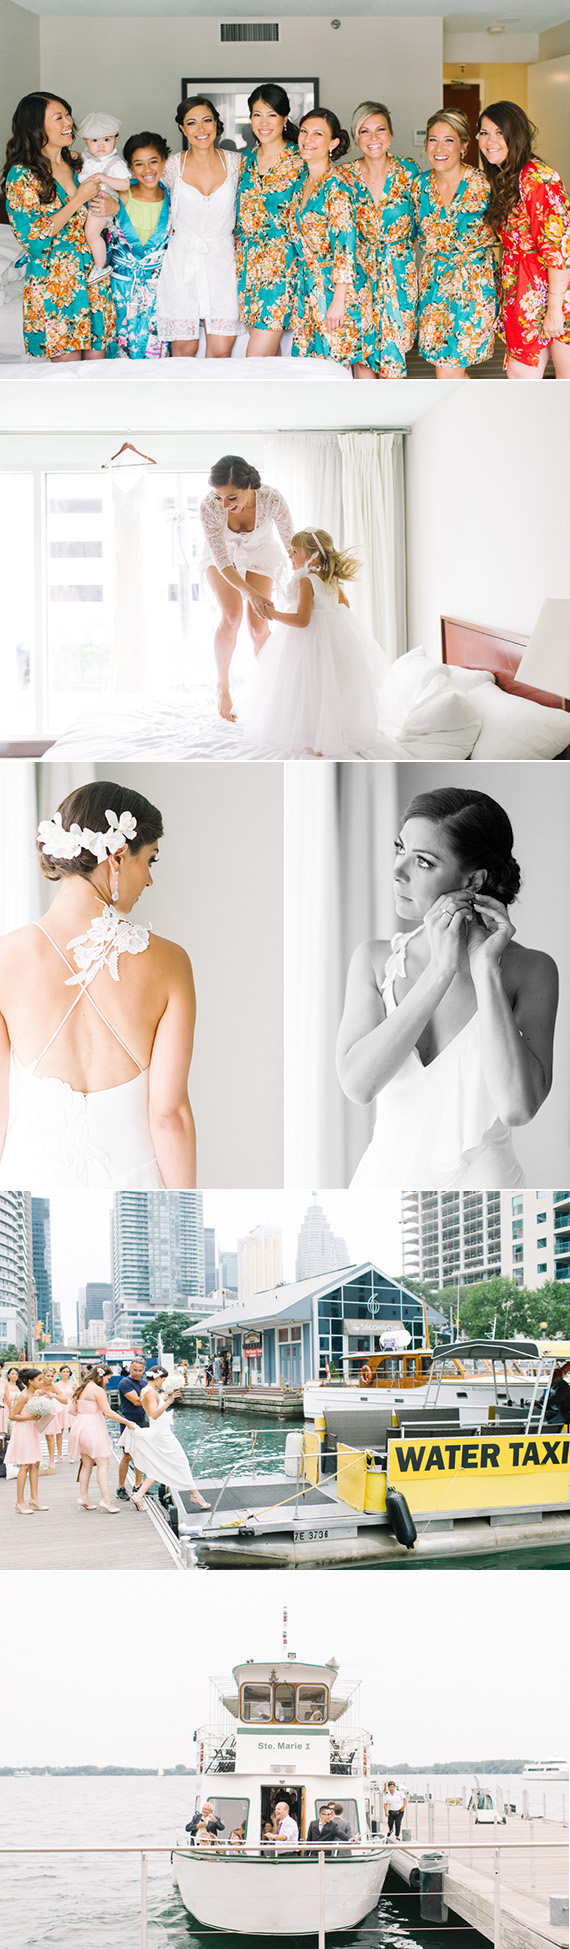 Minted Real Wedding | Toronto Islands